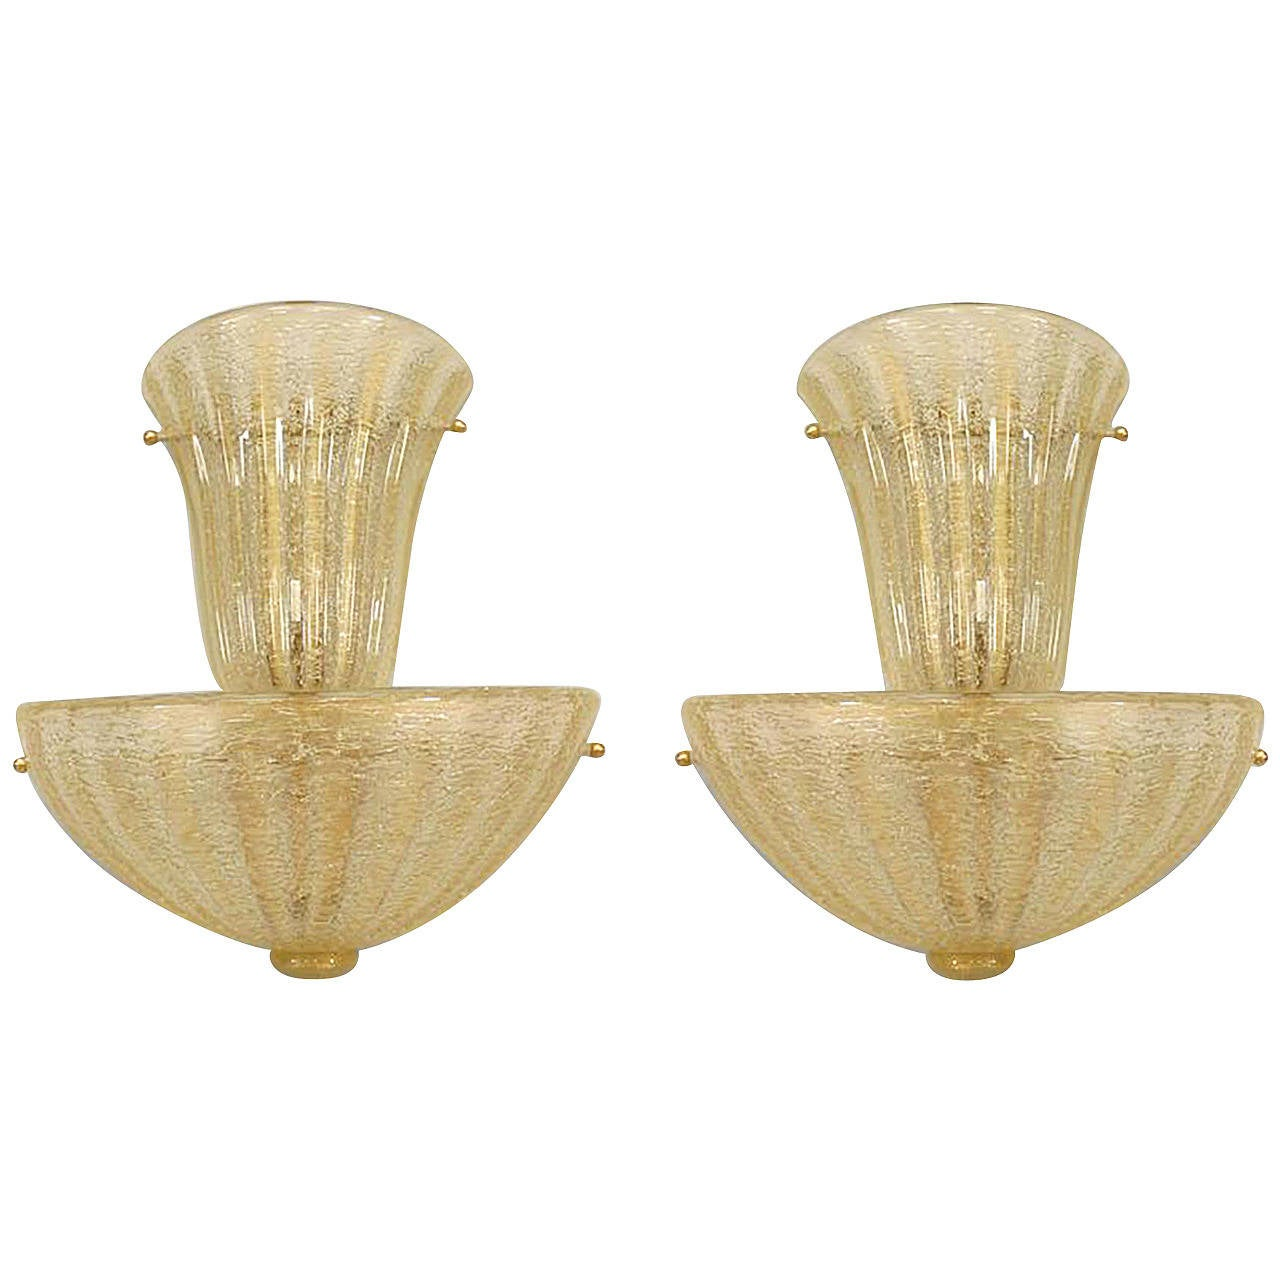 Pair of Italian Gold-Flecked Murano Glass Sconces